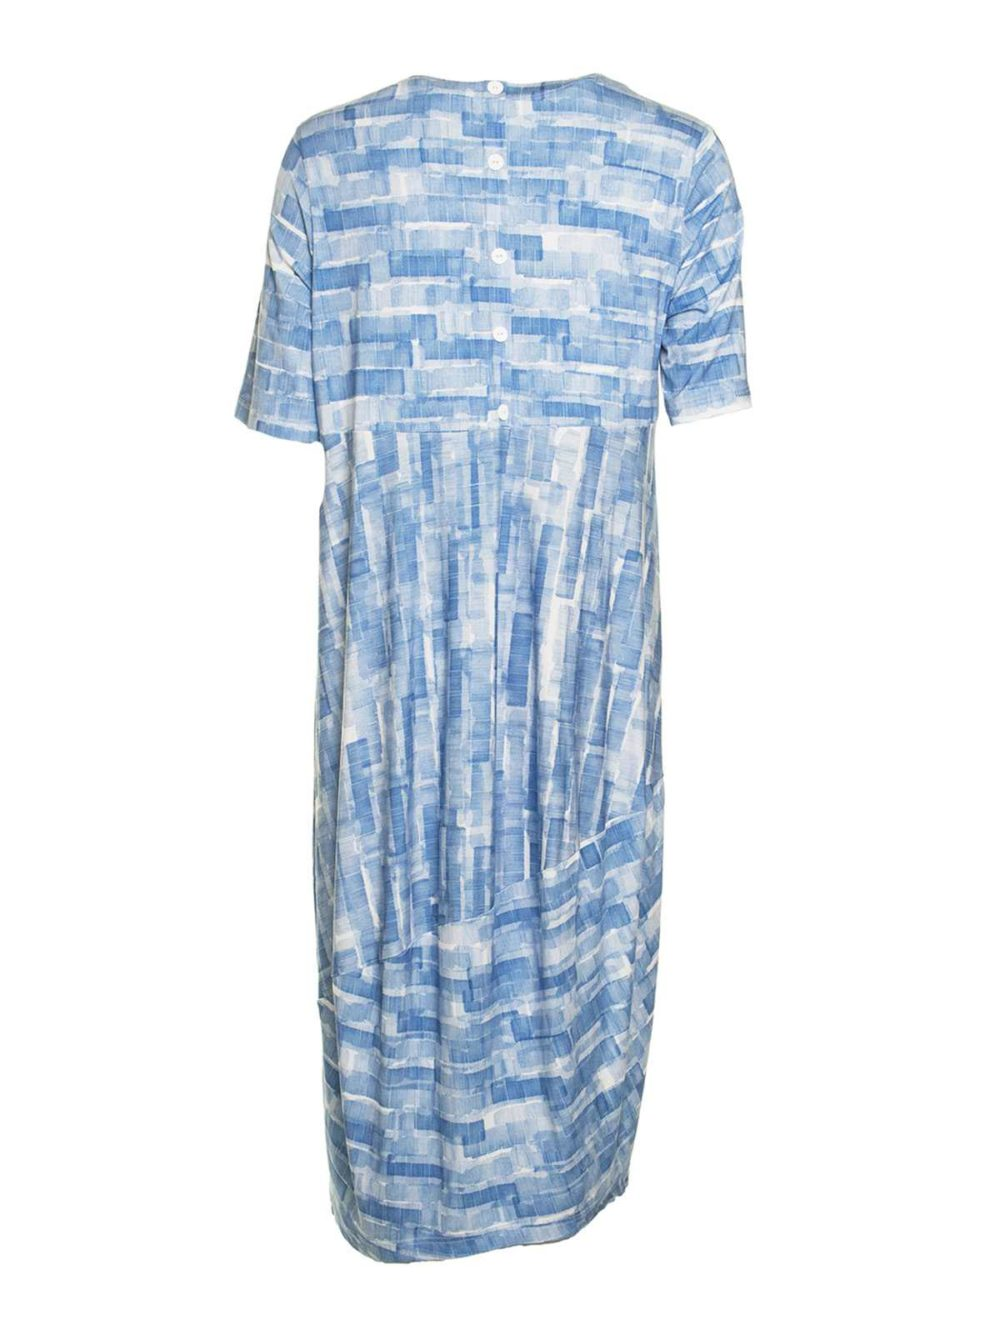 Scribble Mono Print Dress Sahara Katie Kerr Women's Clothing